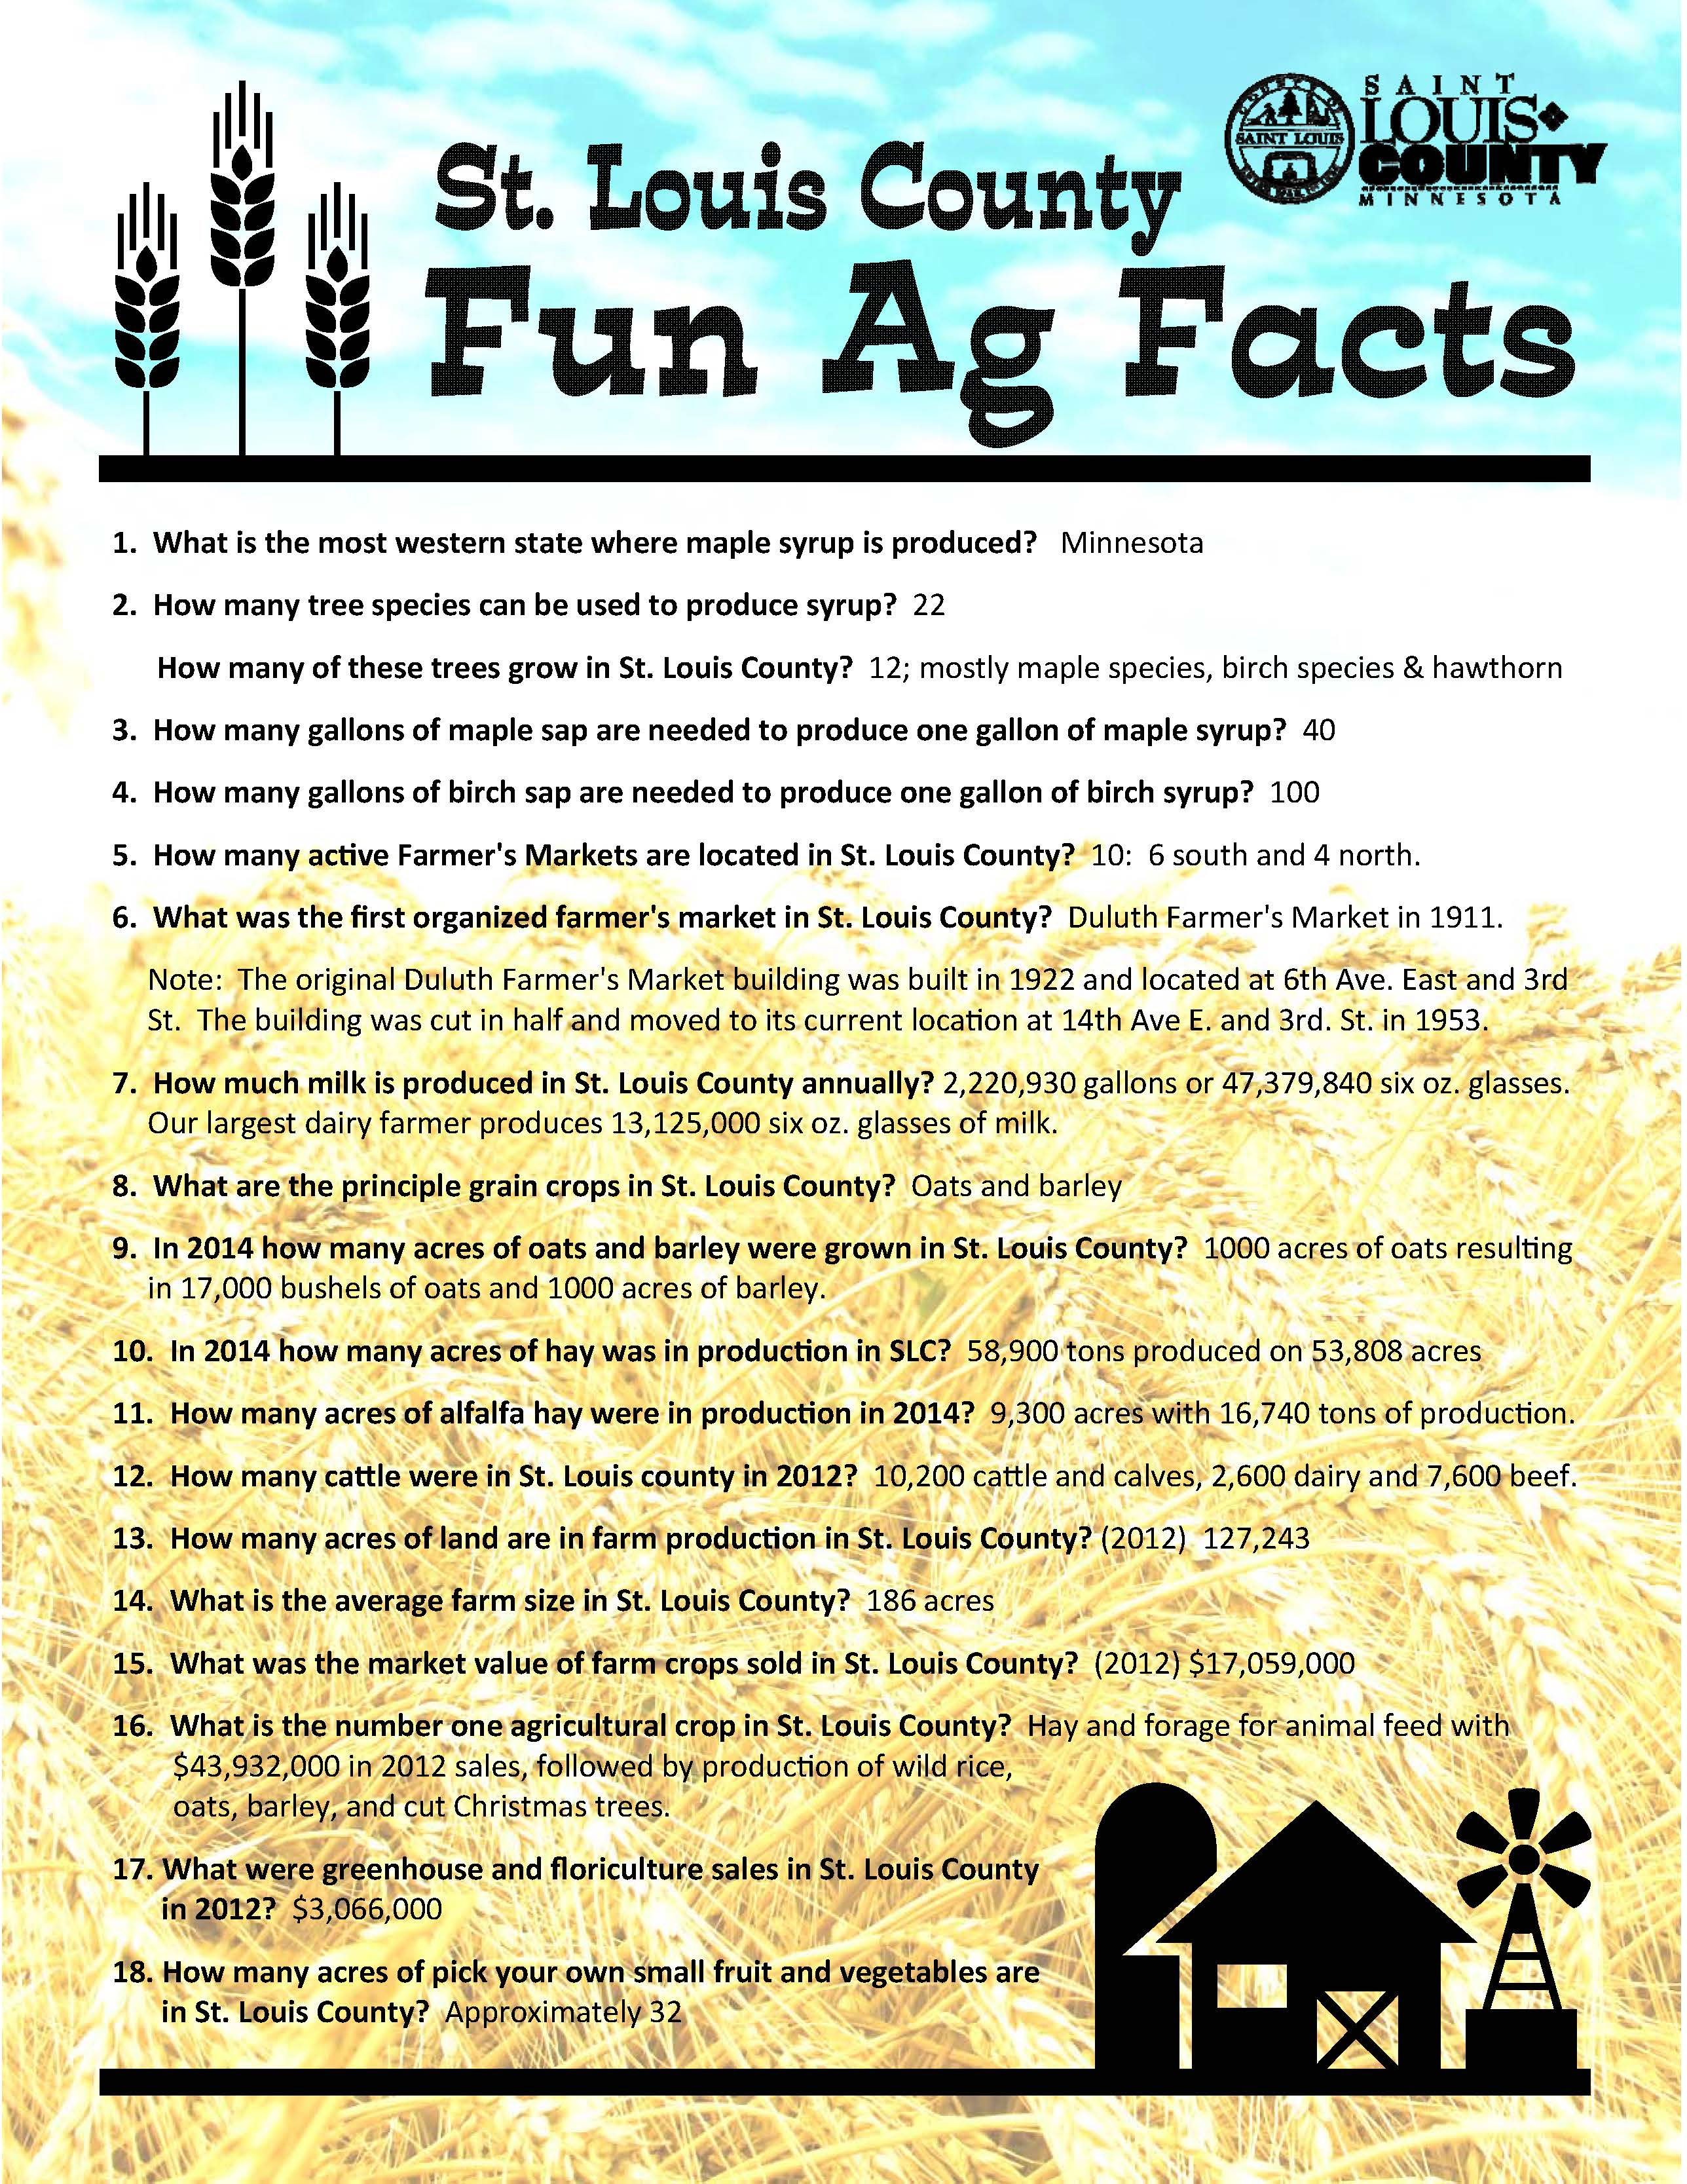 St louis county blog end the year with a baking contest rye not importance of agriculture in st louis county county extension put together the following handout click on the image below to read the fun facts 1betcityfo Gallery